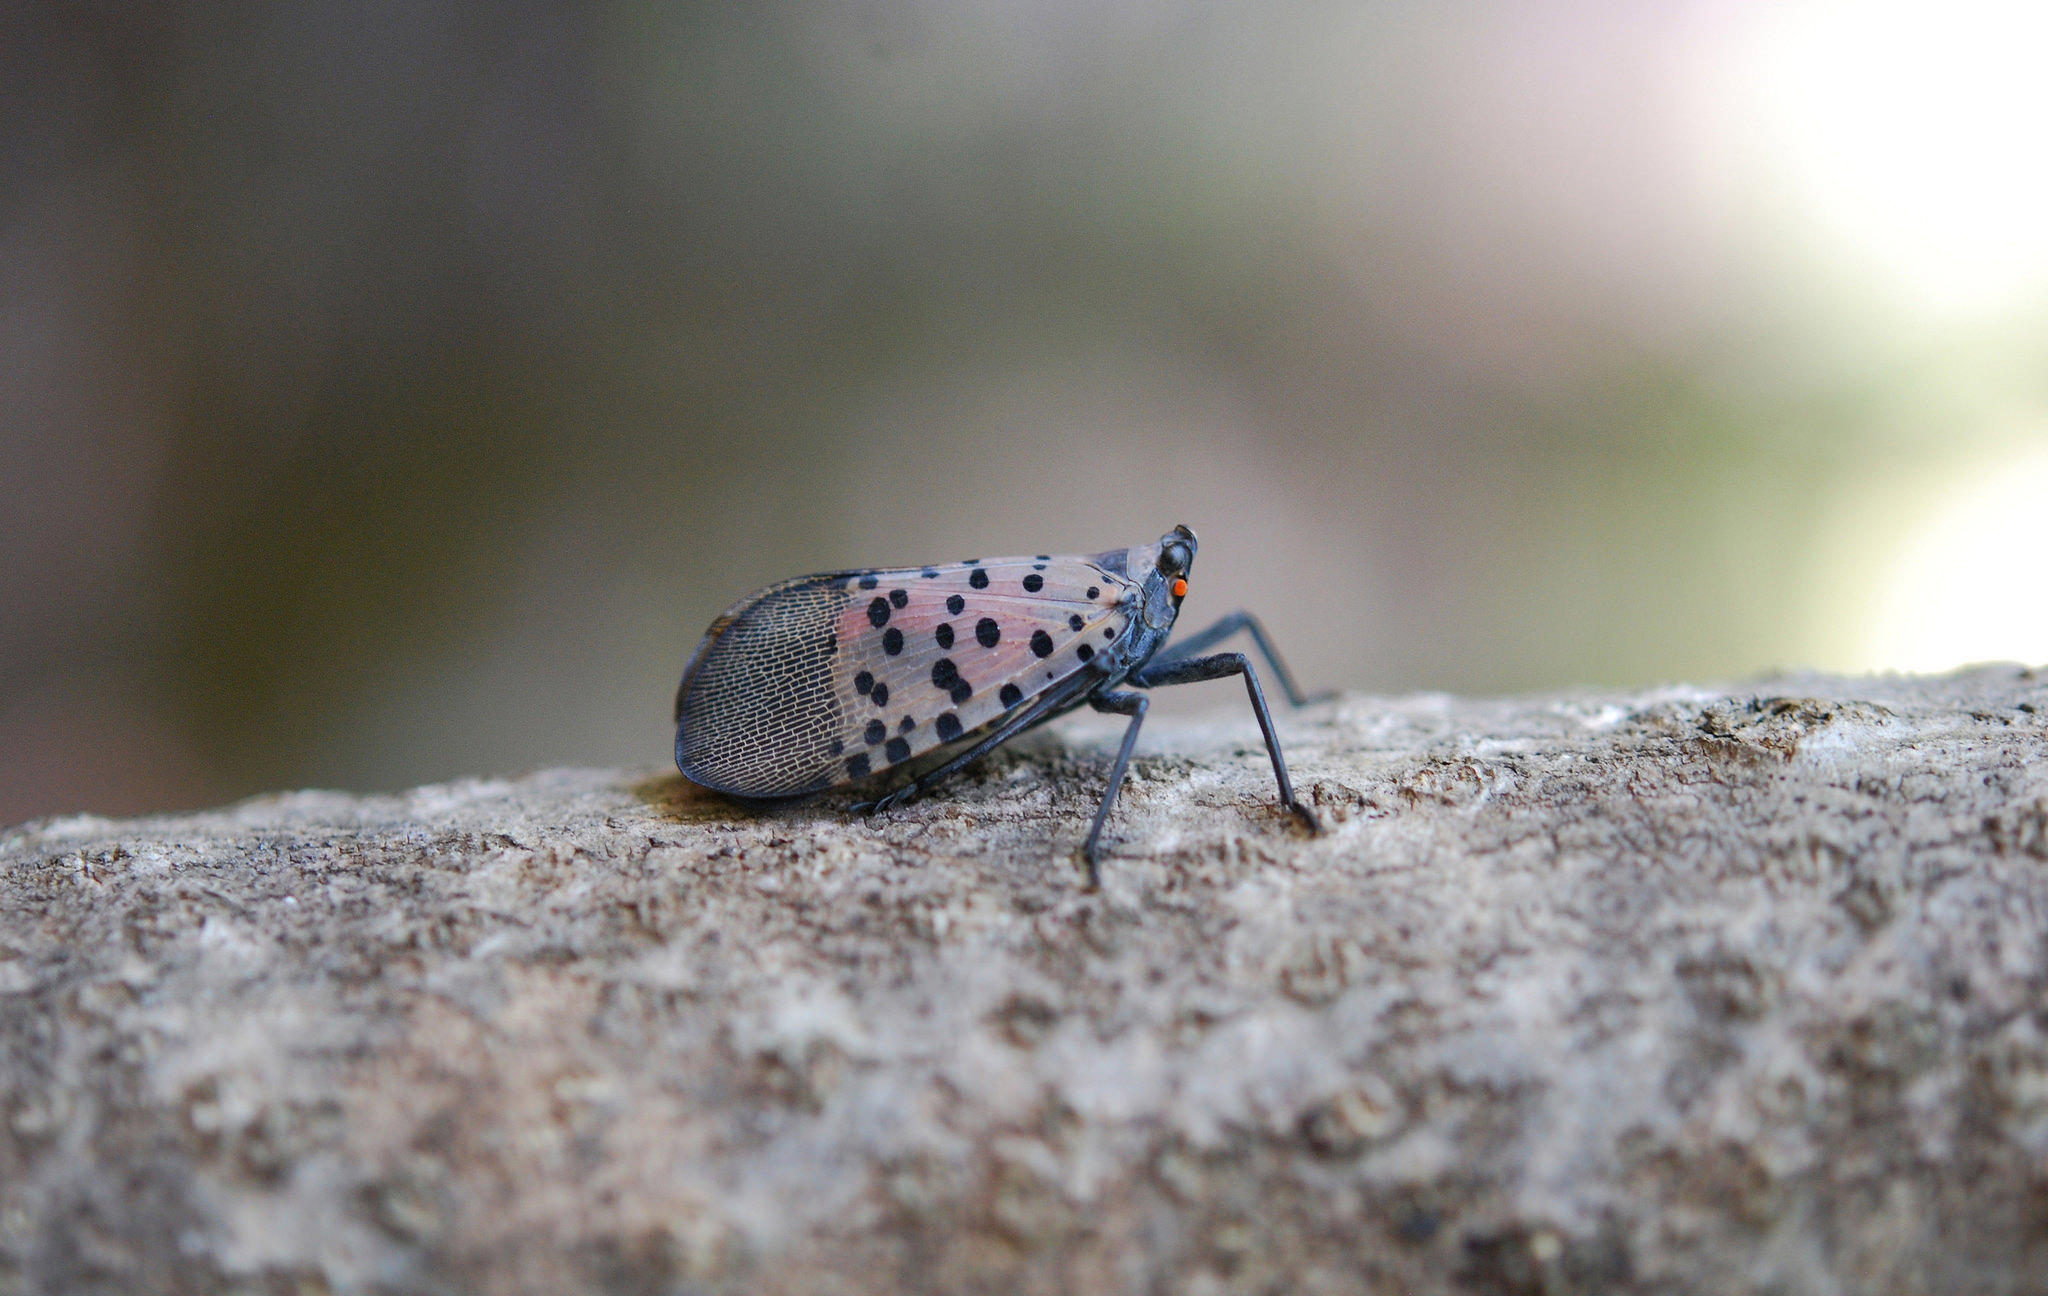 USDA Will Spend $17M To Fight Spotted Lanternfly, Invasive ...